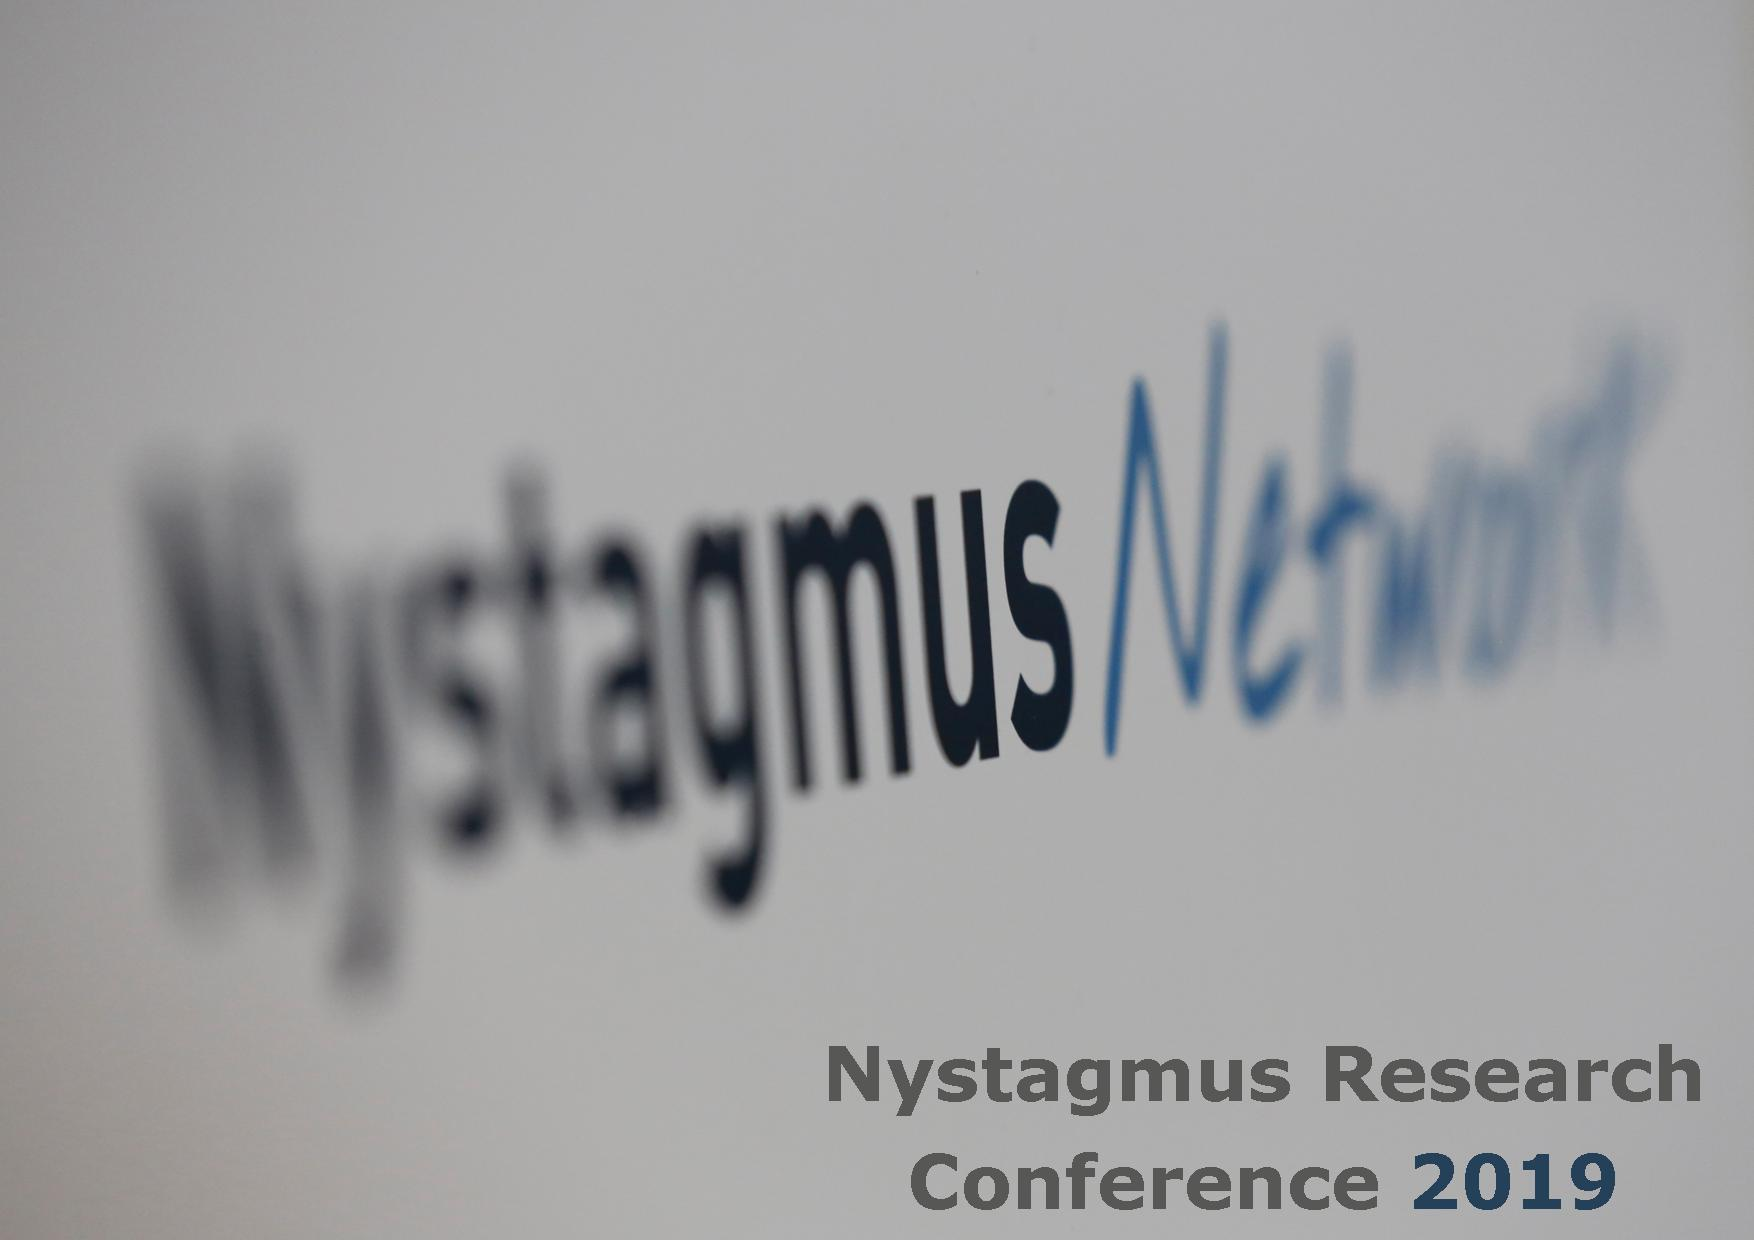 Nystagmus research conference 2019